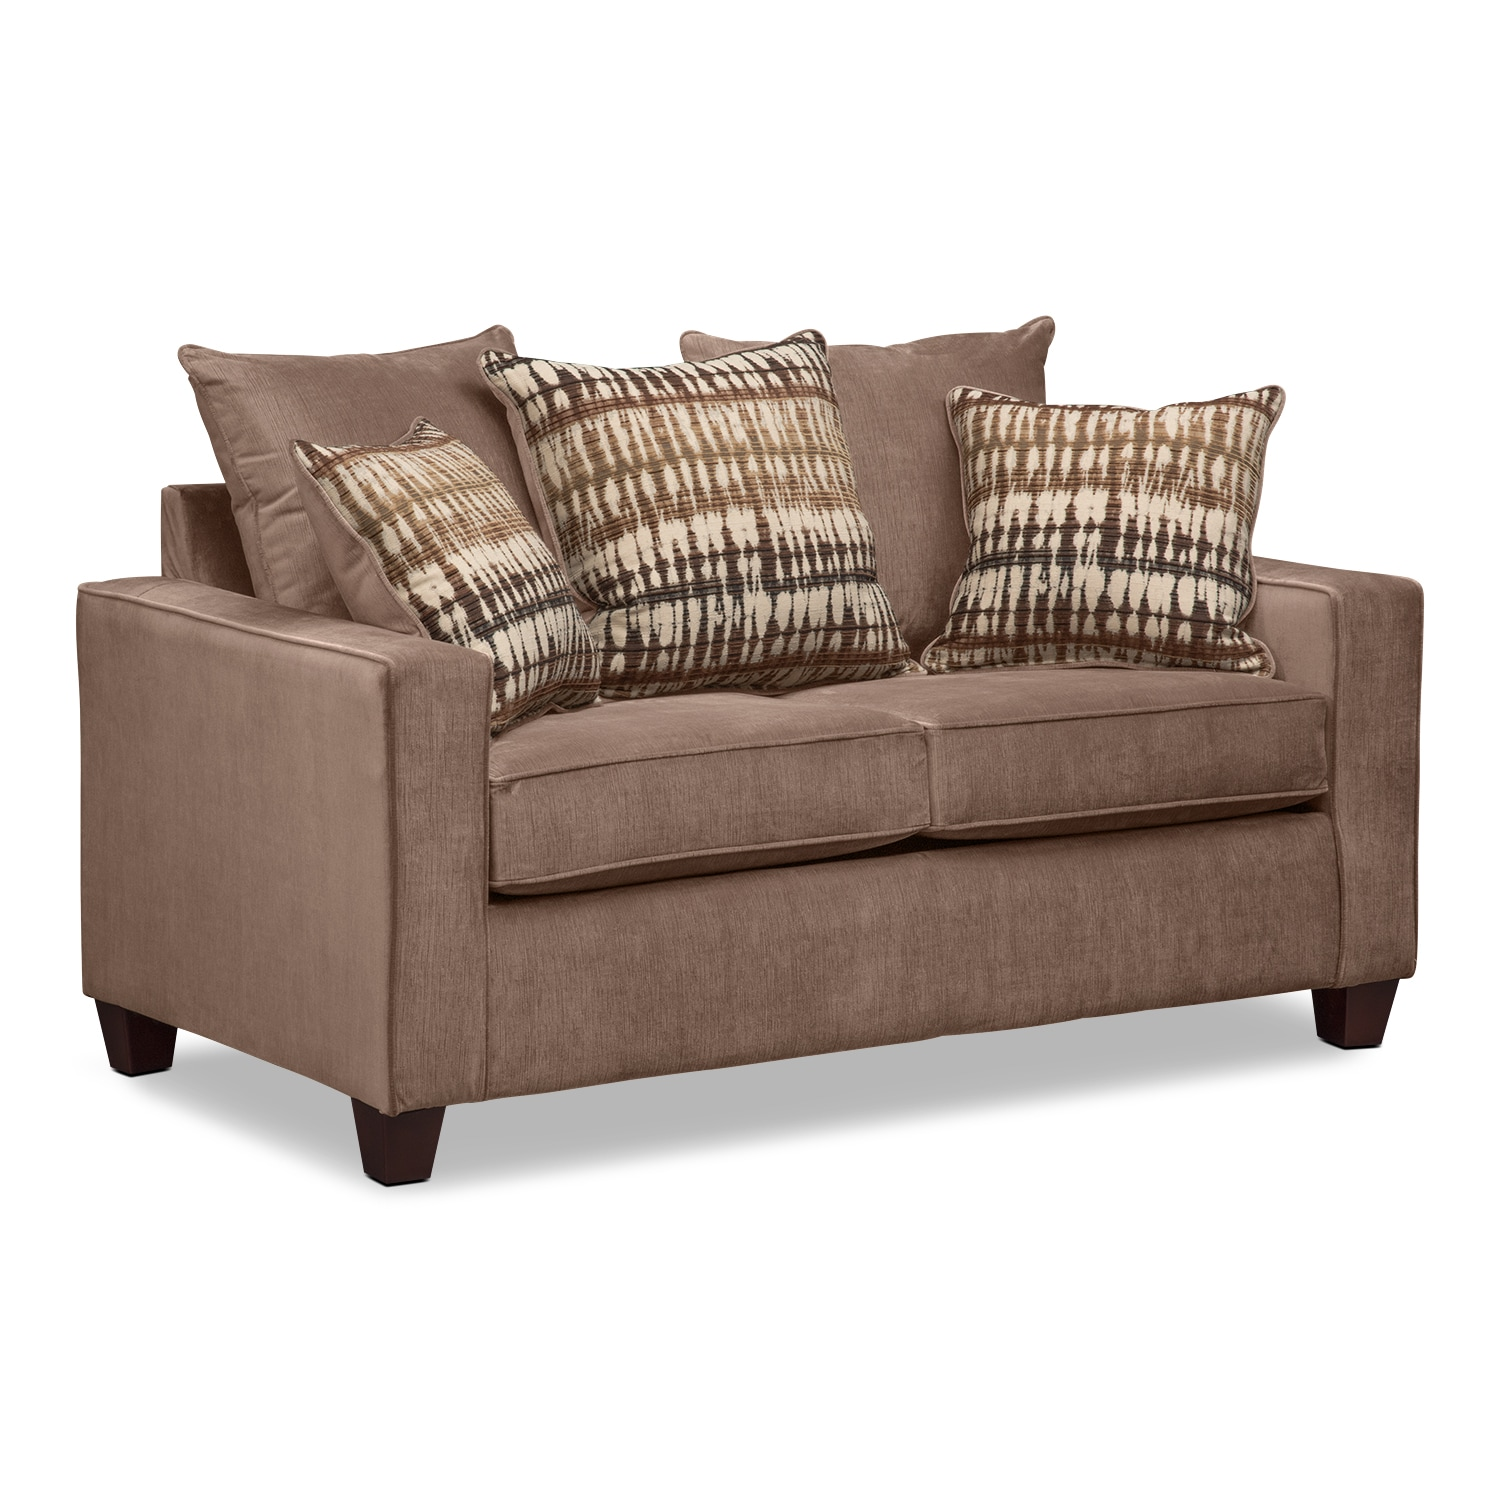 Living Room Furniture - Bryden Loveseat - Chocolate